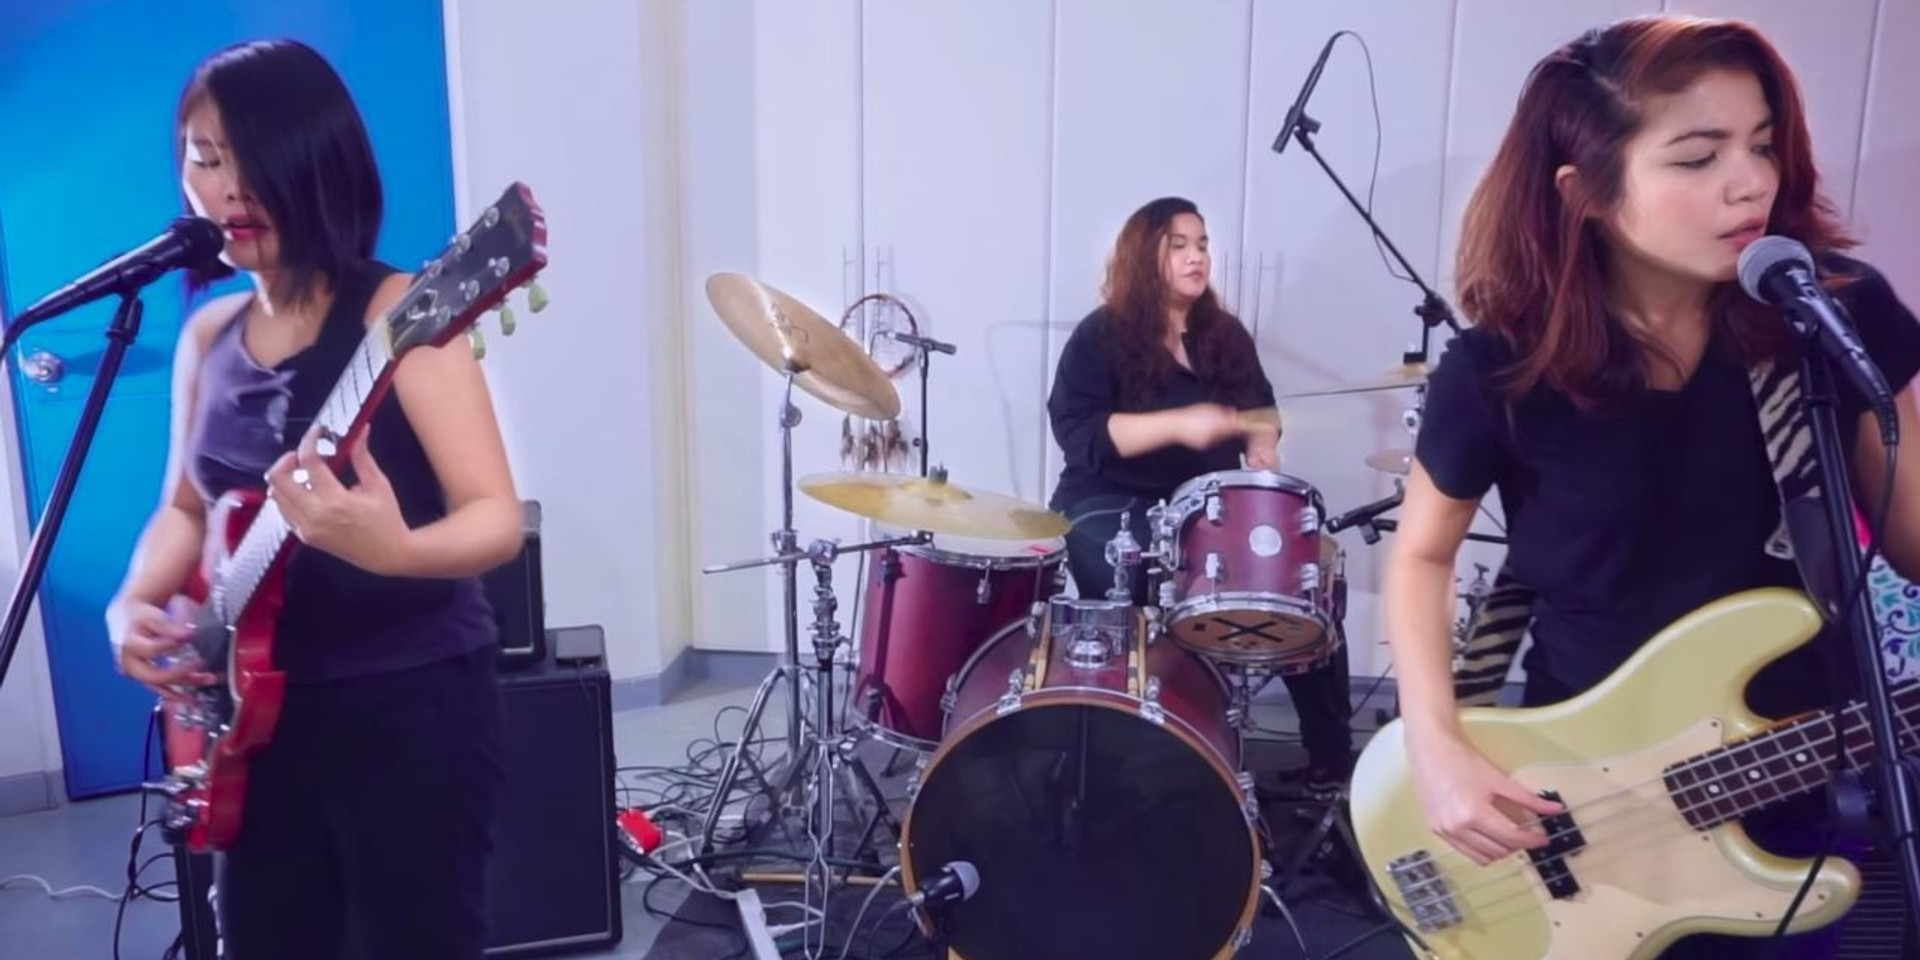 3/3 release live performance video for new single 'Clingy' – watch